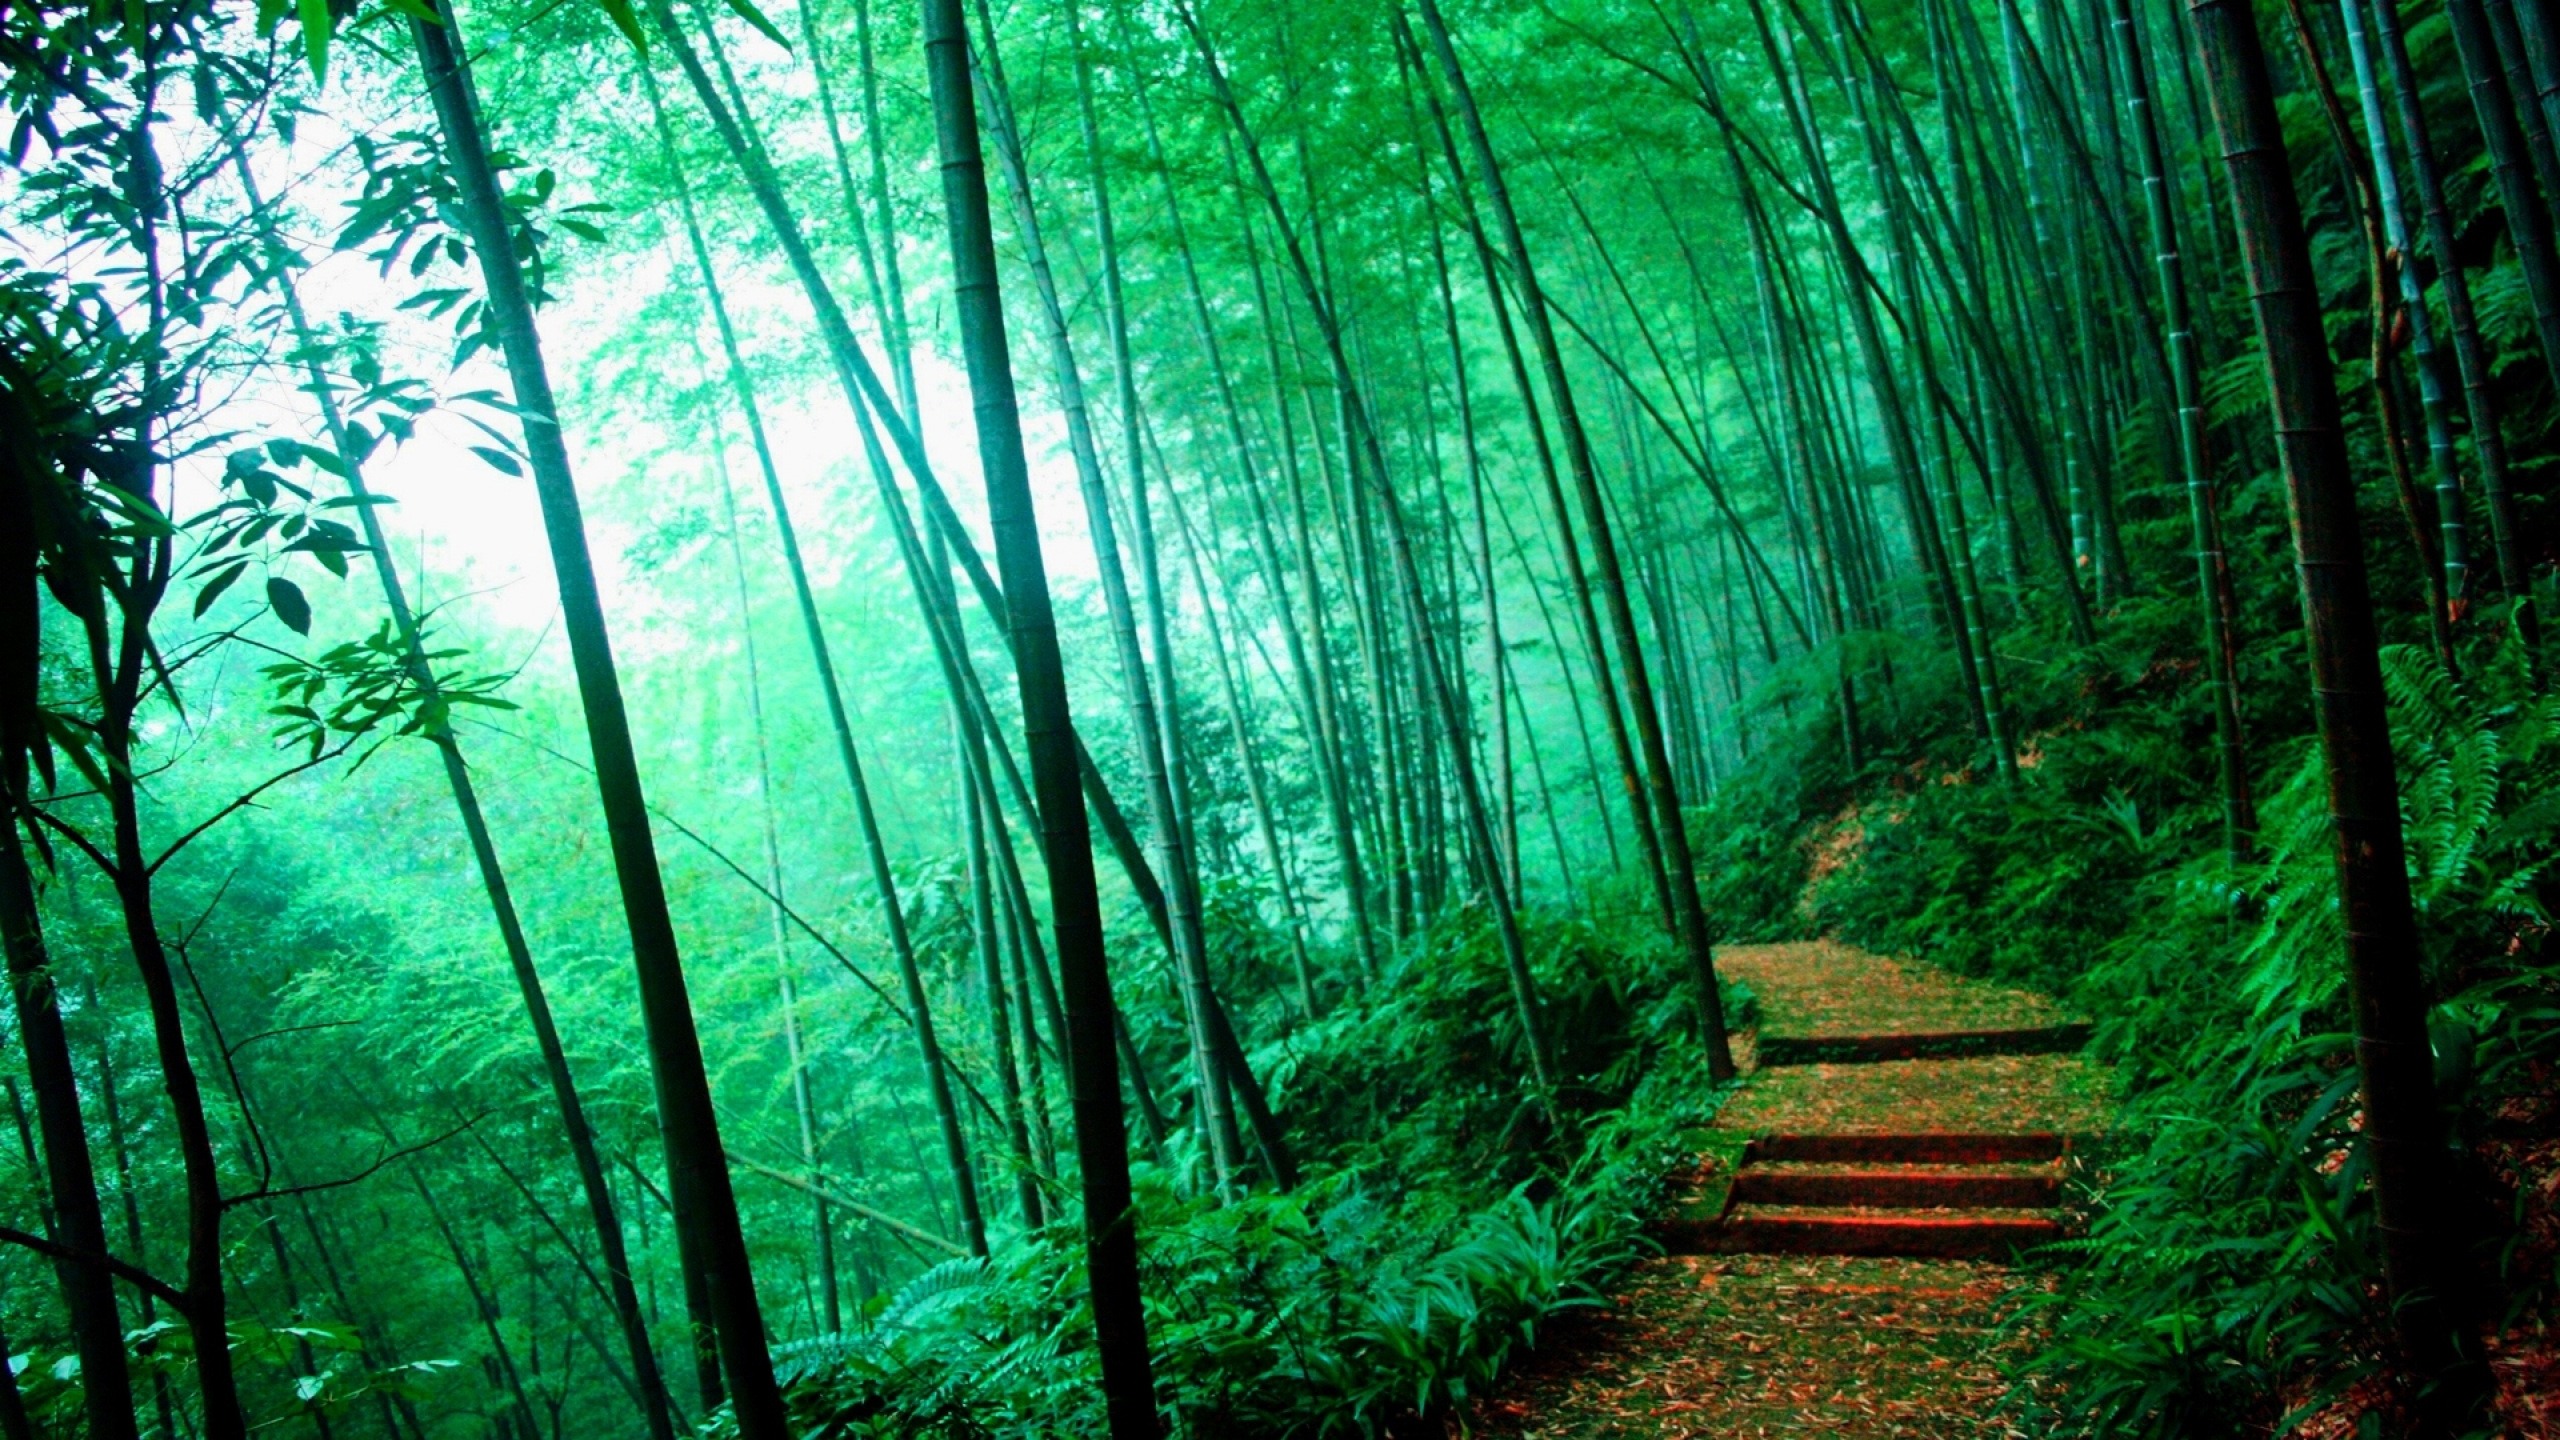 Nature Forest Backgrounds By Cherice Beddo On Goldwallpapers China Bamboo Forest Path 2560x1440 Download Hd Wallpaper Wallpapertip